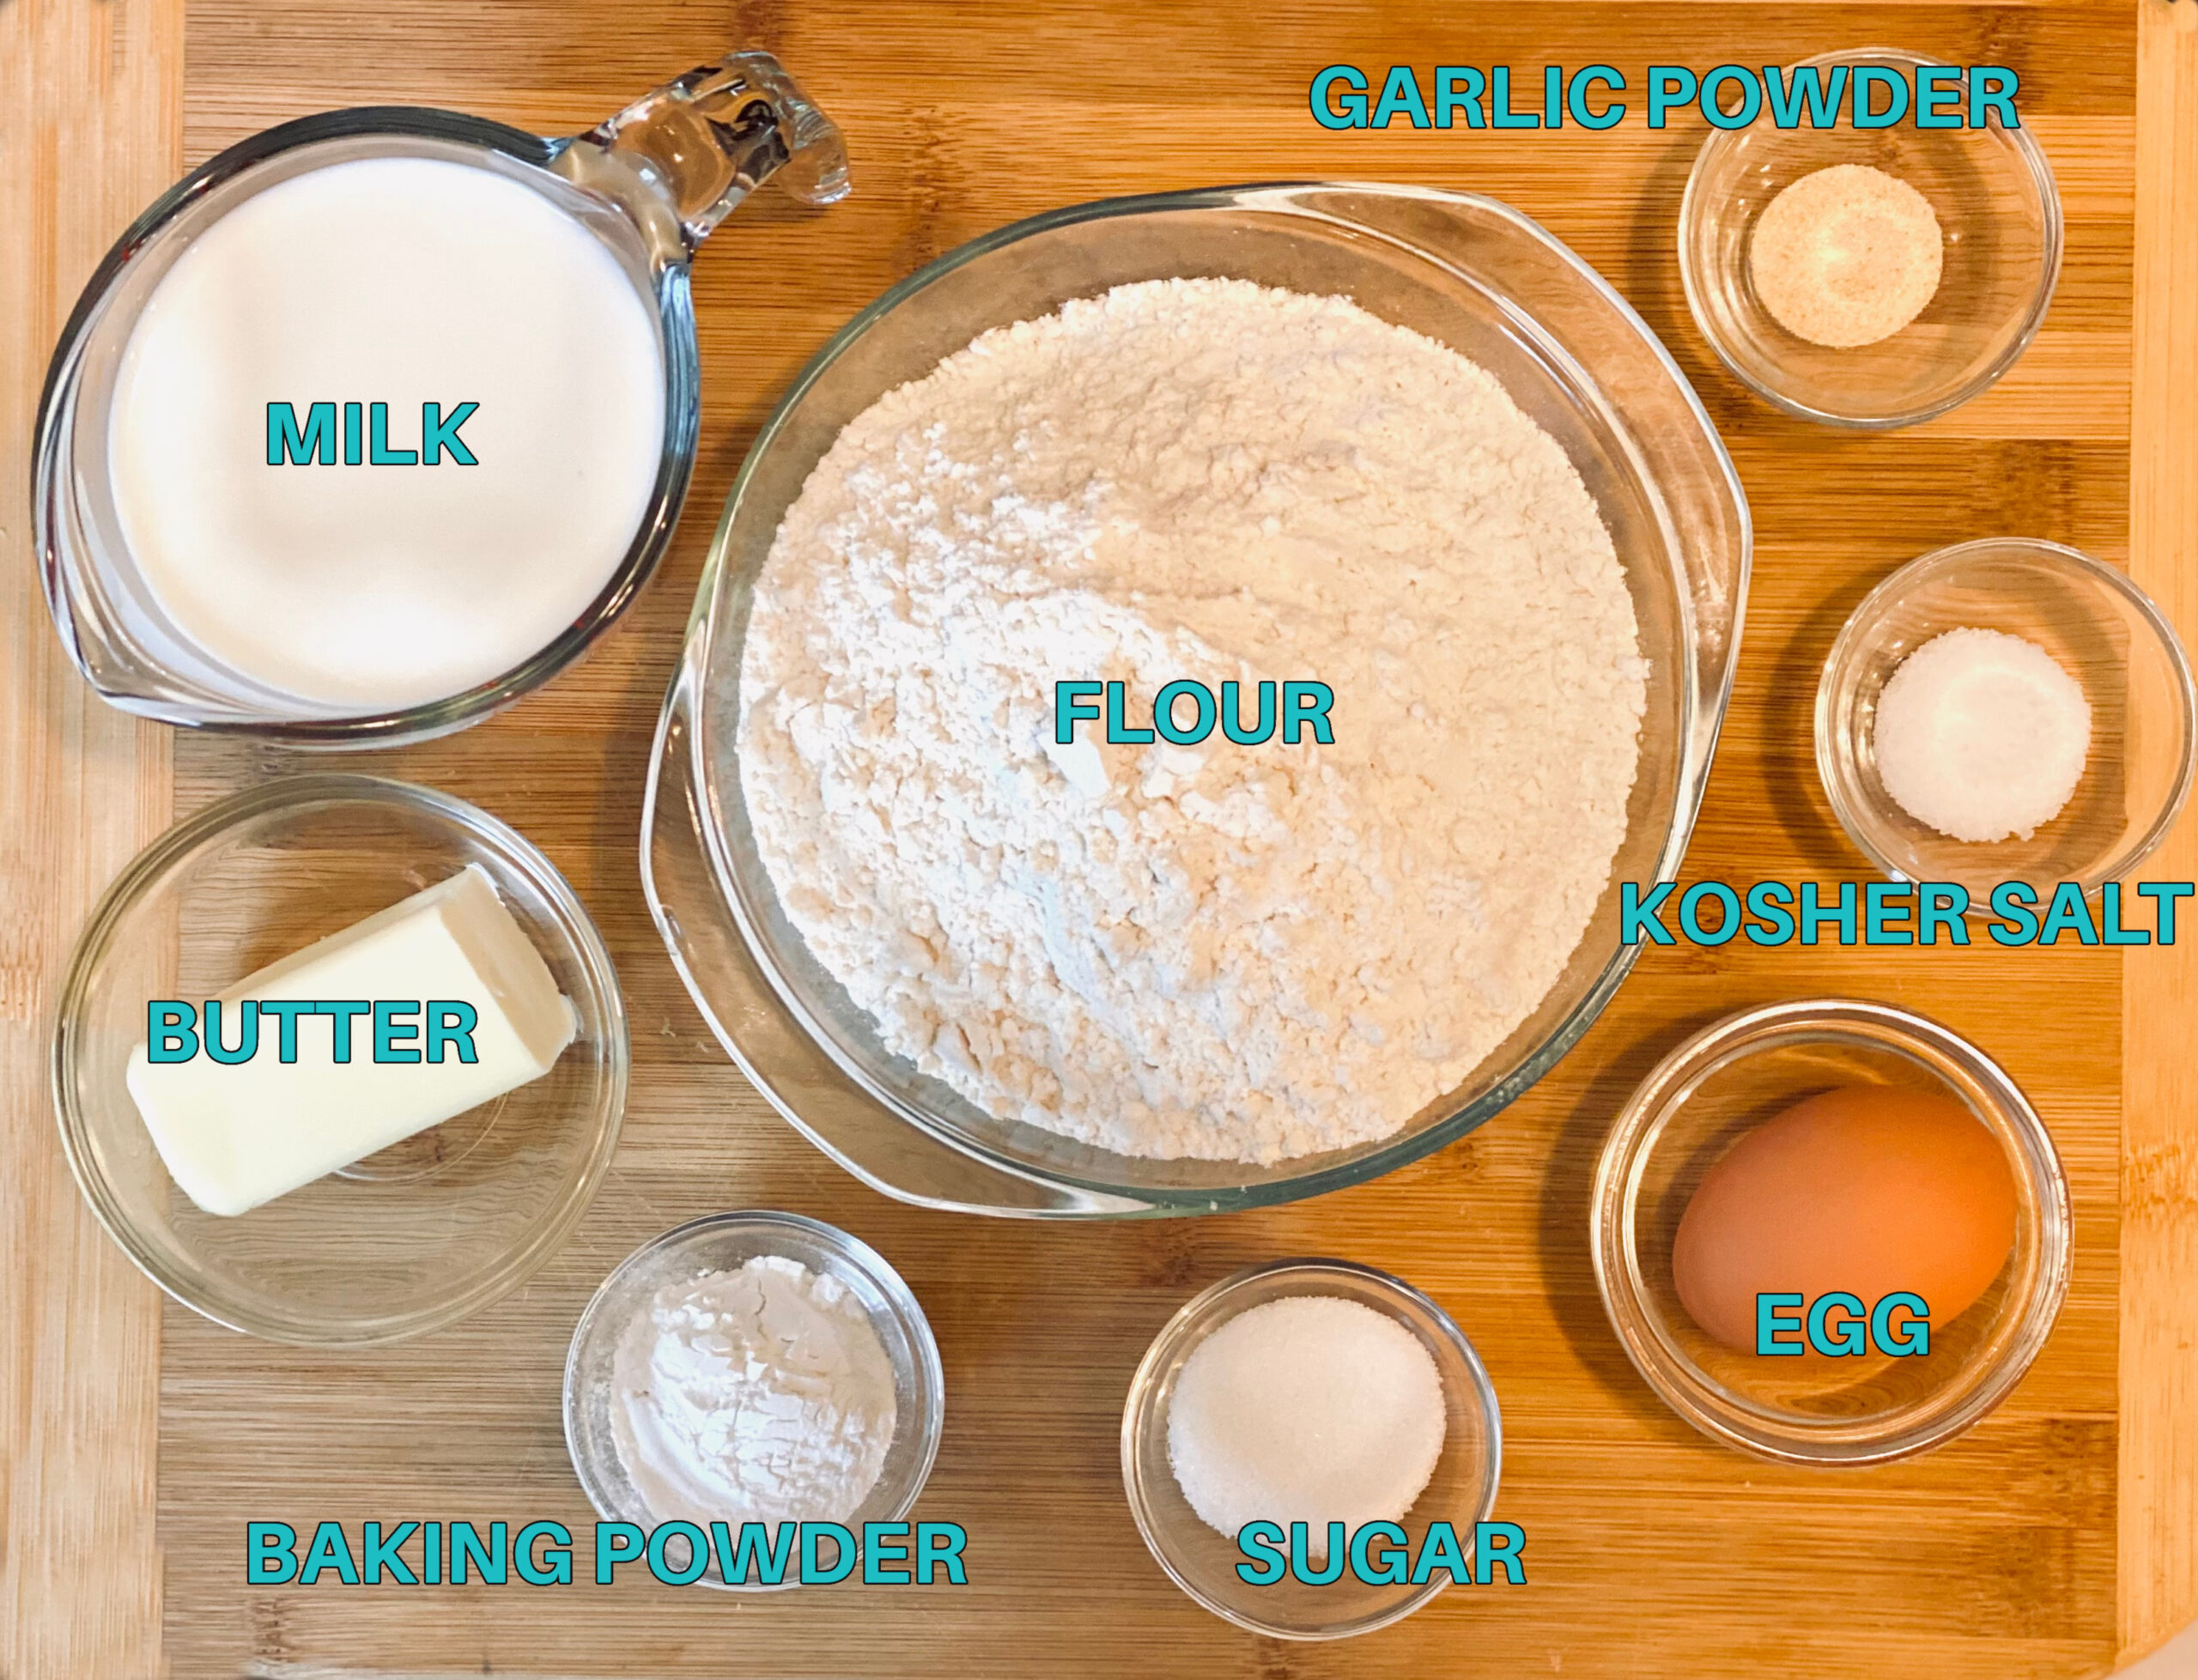 ingredients for making homemade bread without yeast